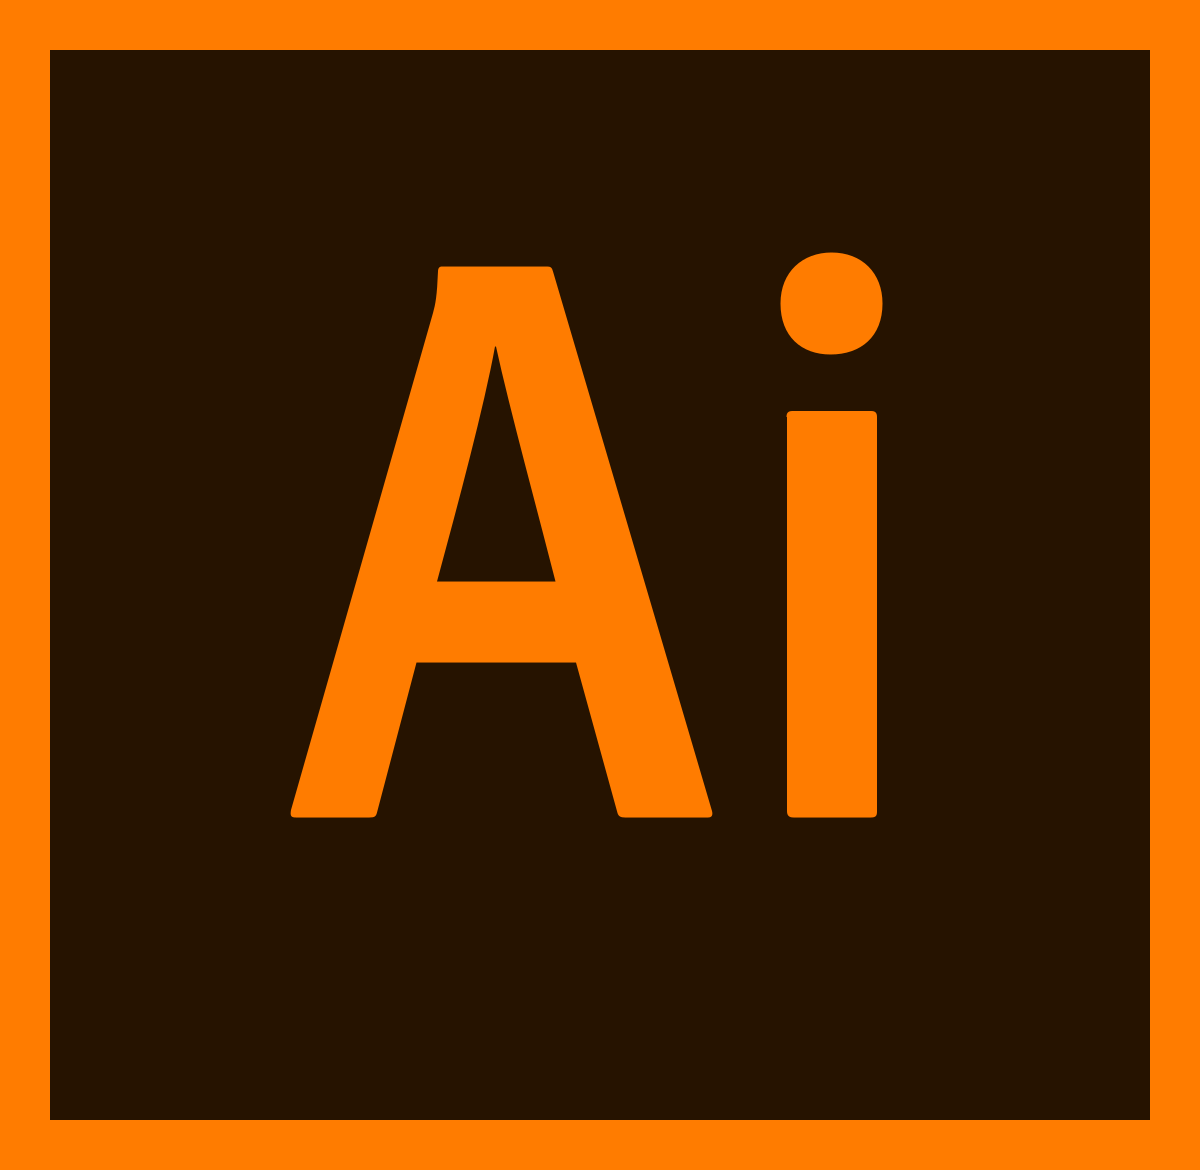 Adobe Illustrator CS6 16 Free Download